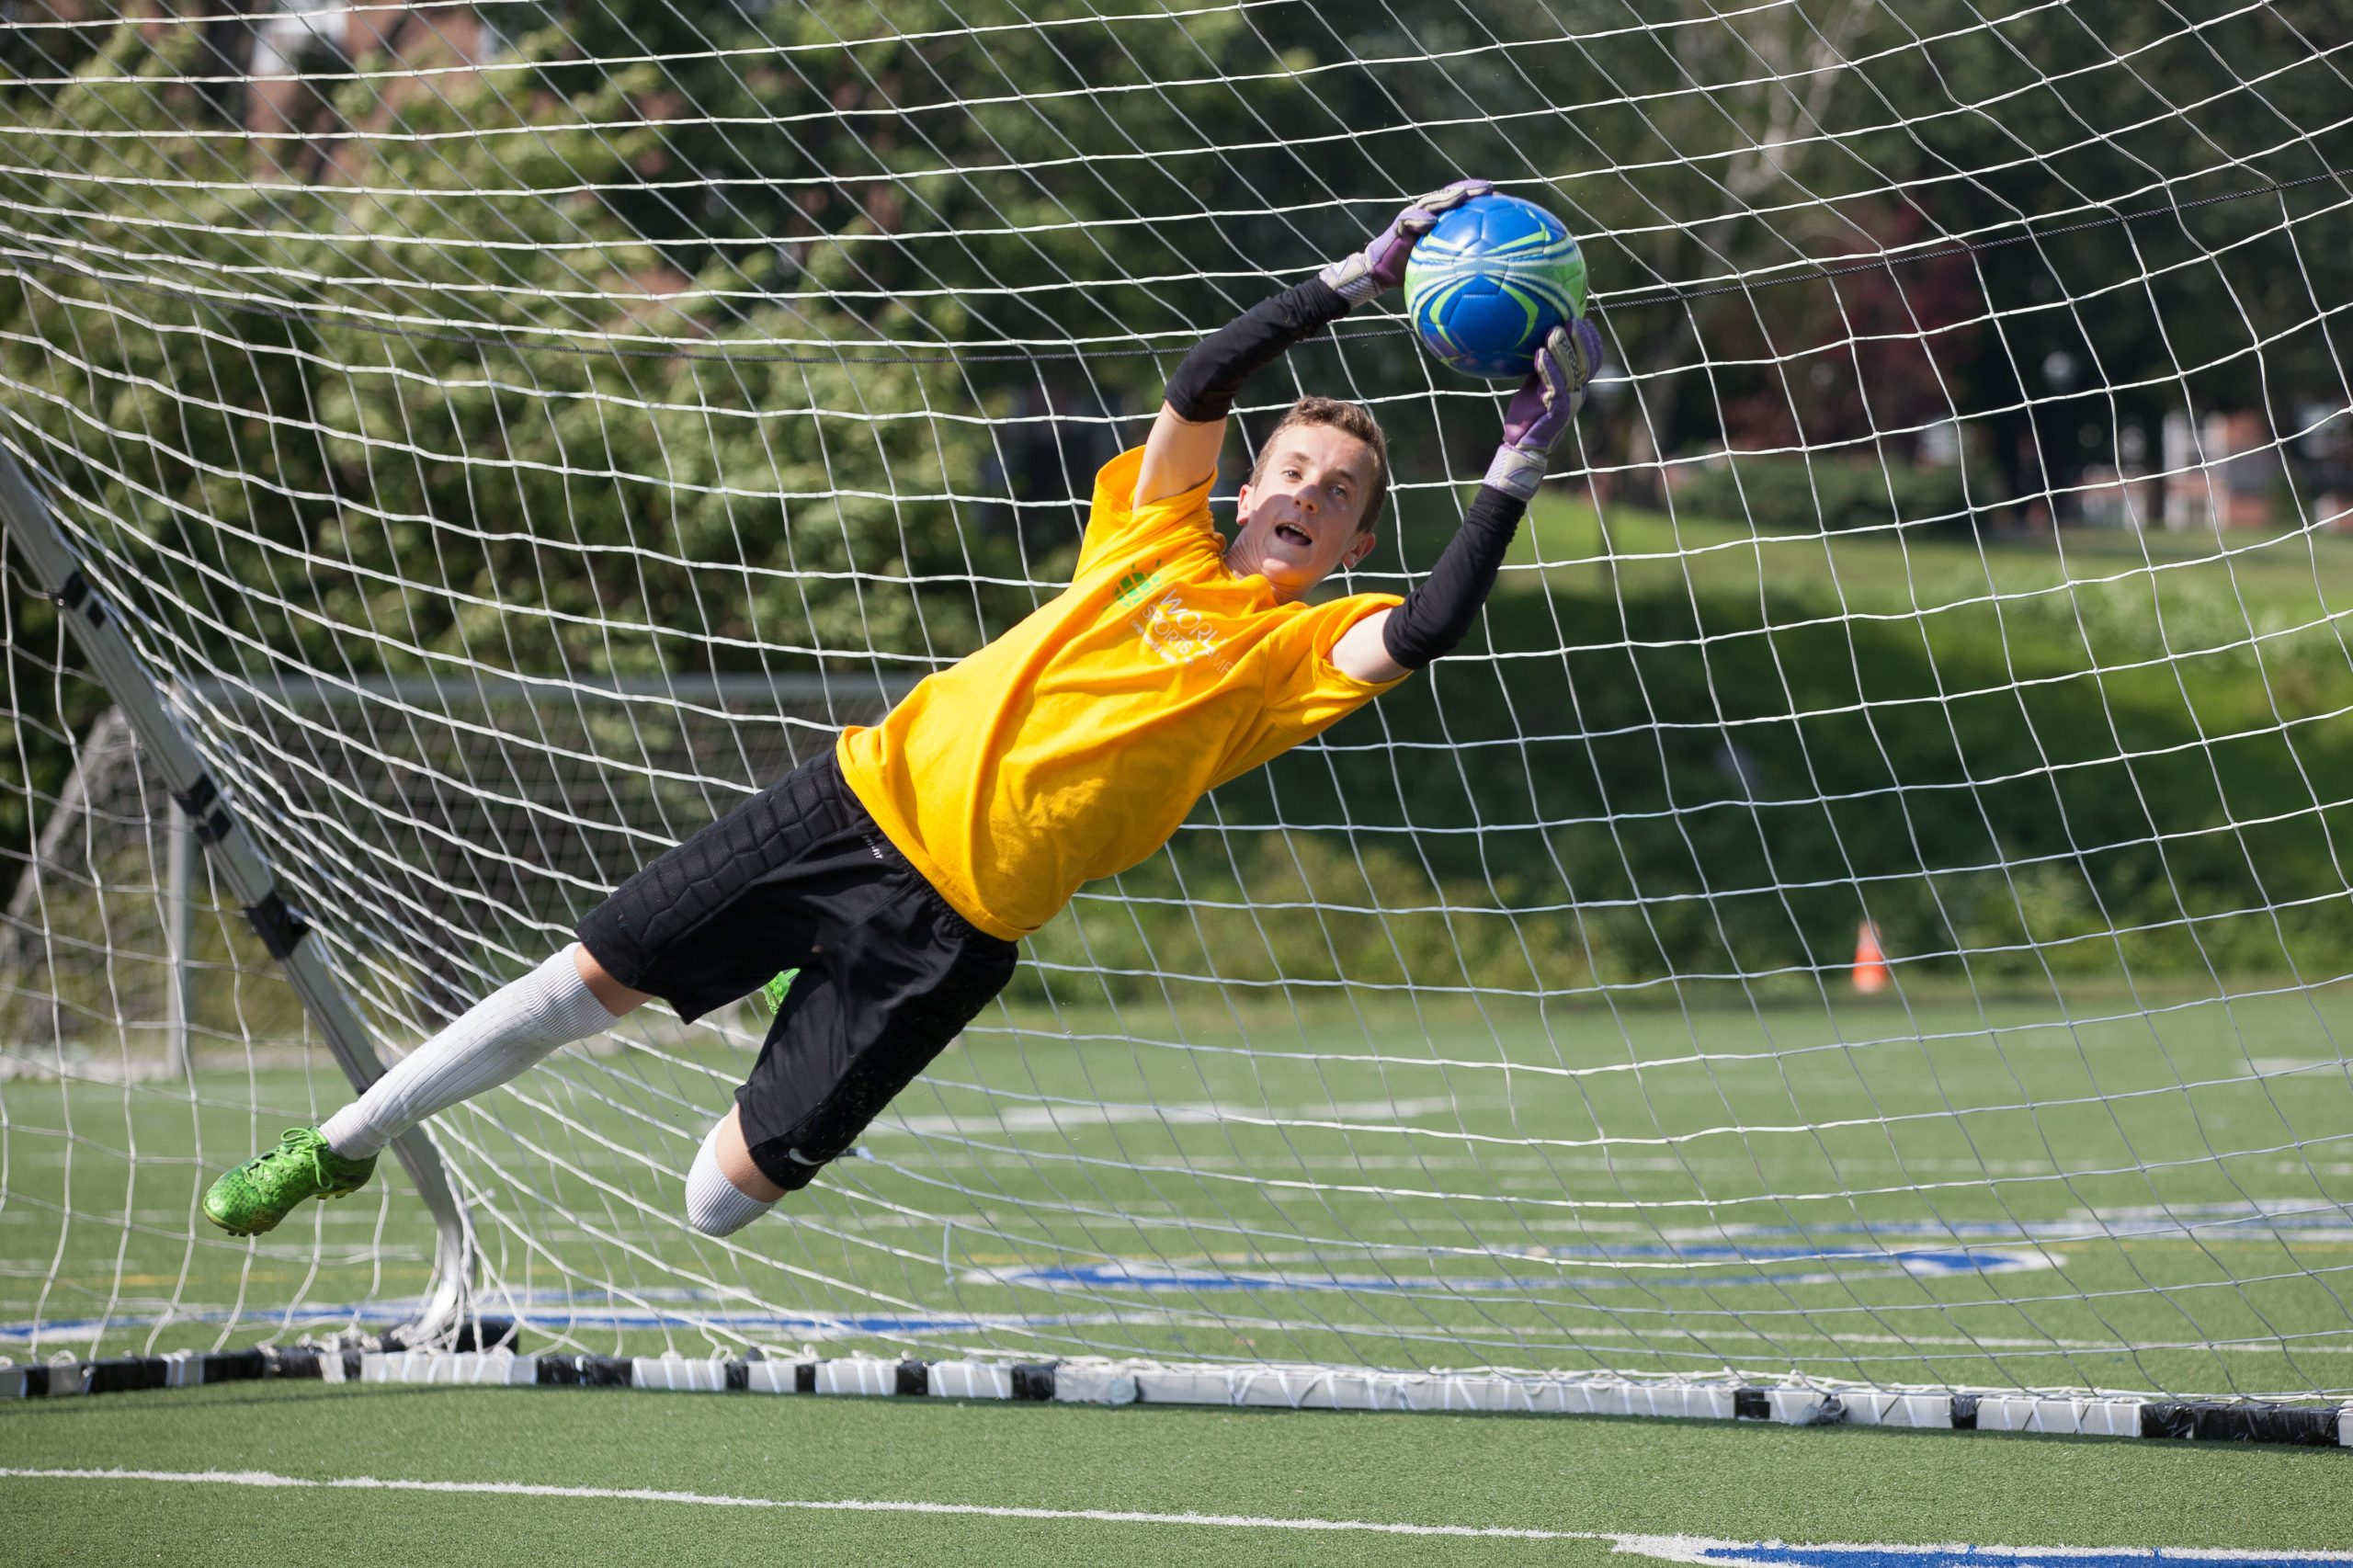 a-goalie-catches-a-soccer-ball-in-the-net-at-an-overnight-soccer-camp